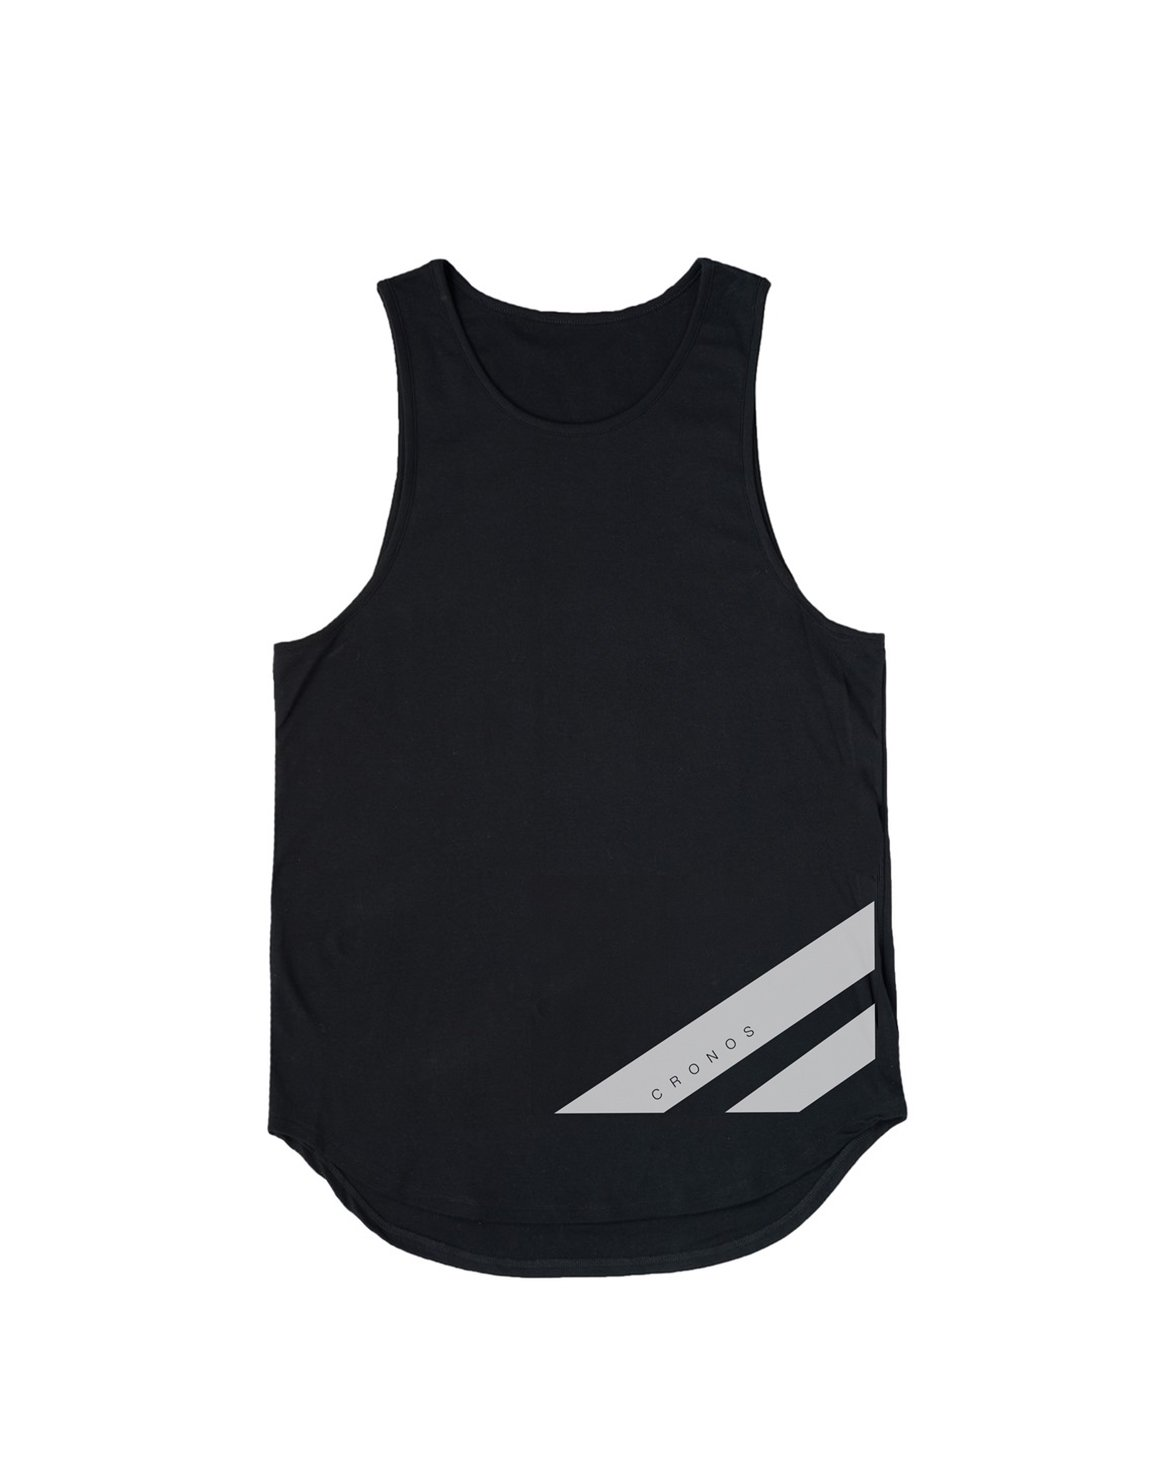 <img class='new_mark_img1' src='https://img.shop-pro.jp/img/new/icons1.gif' style='border:none;display:inline;margin:0px;padding:0px;width:auto;' />CRONOS NEW STRIPE LOGO TANKTOP【BLACK】